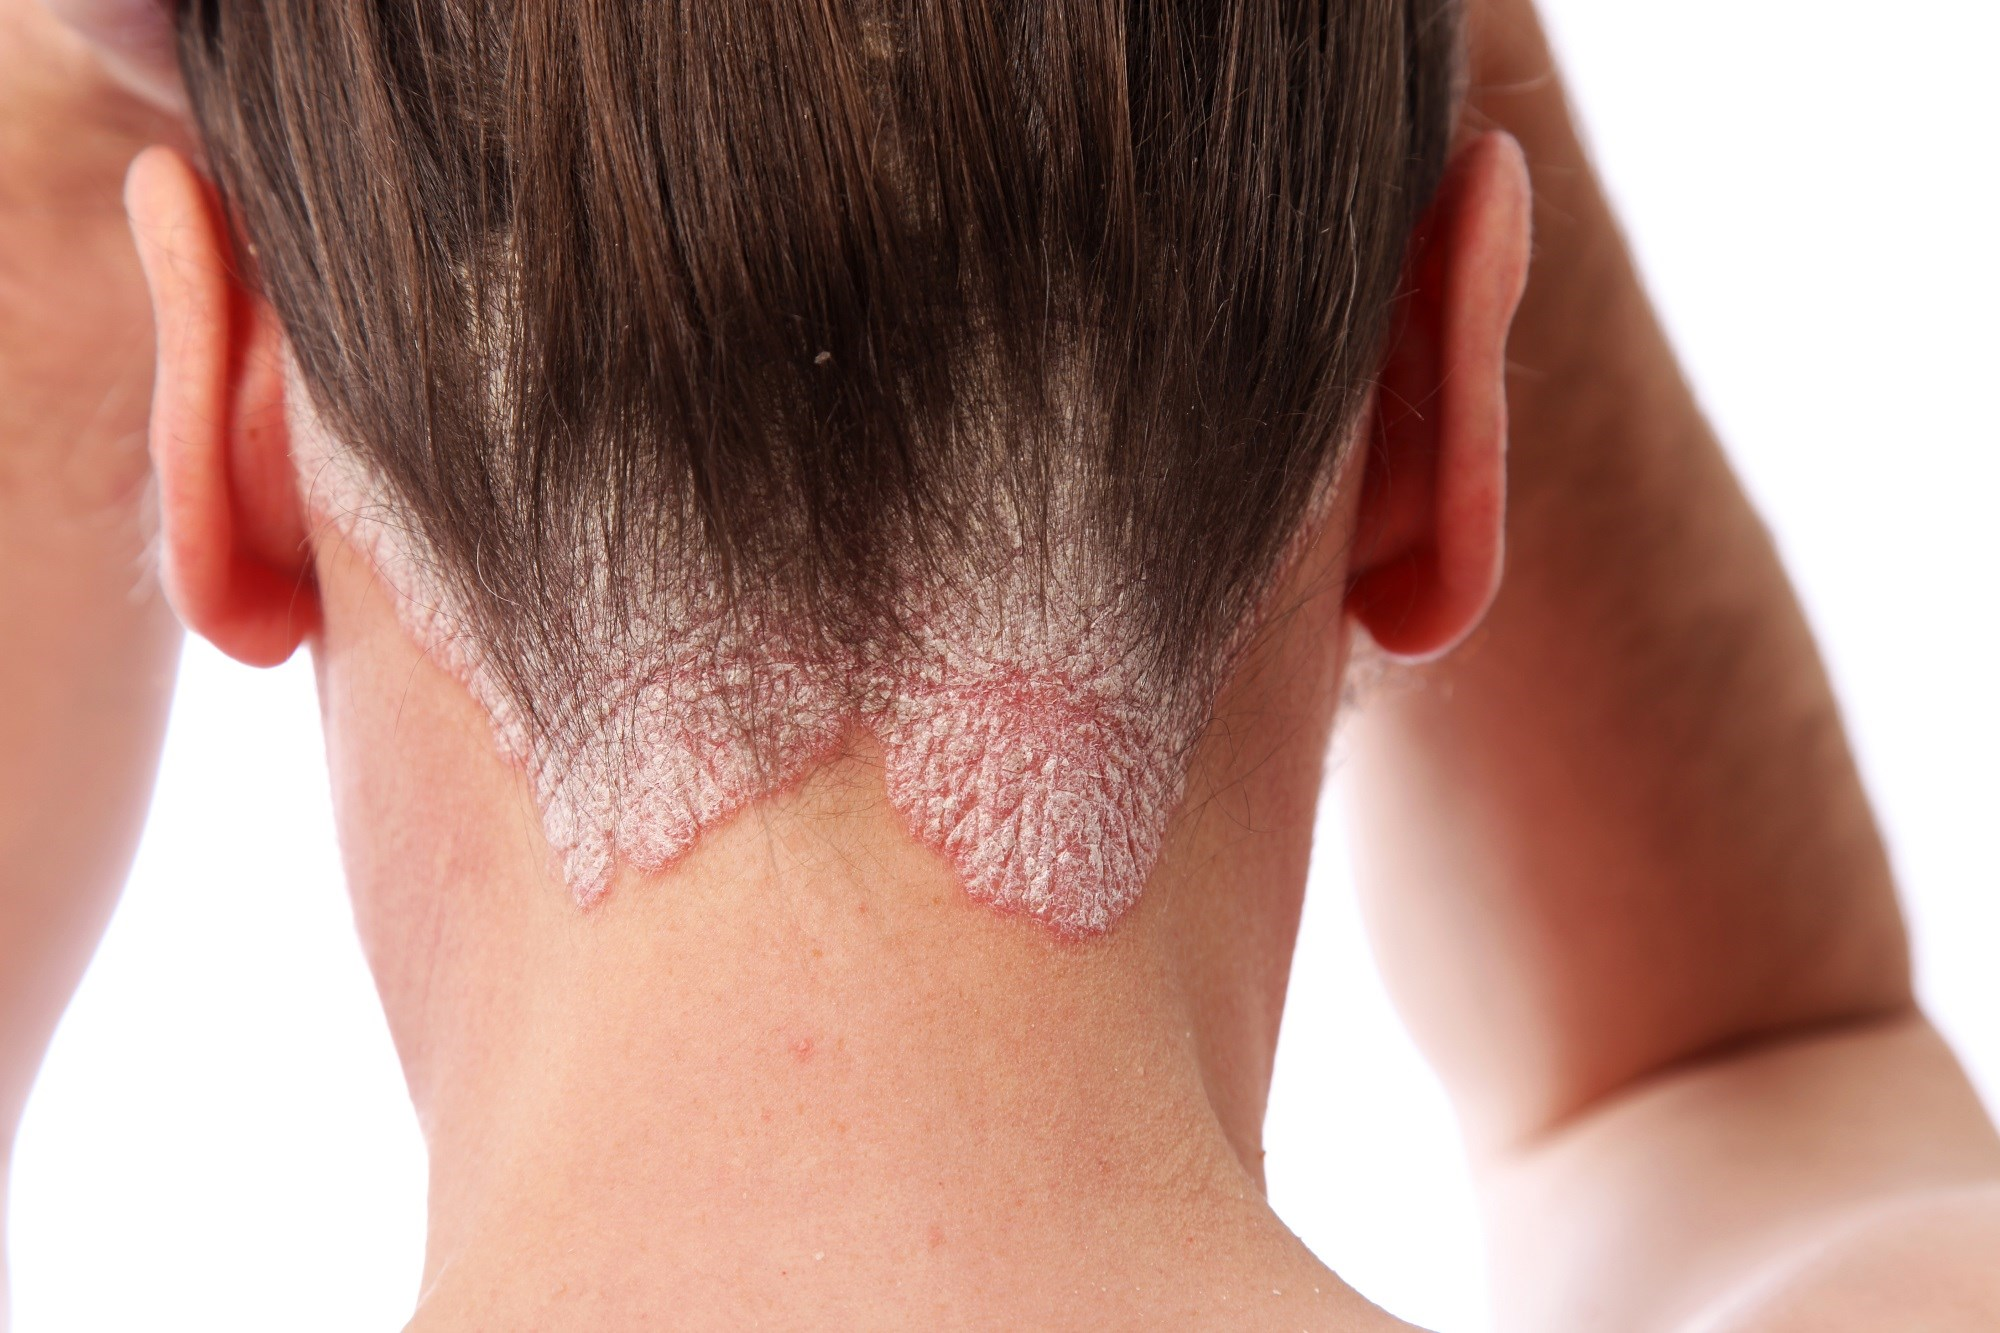 Depending on the definition used, there are large variations in the proportion of patients identified as having moderate-to-severe psoriasis.